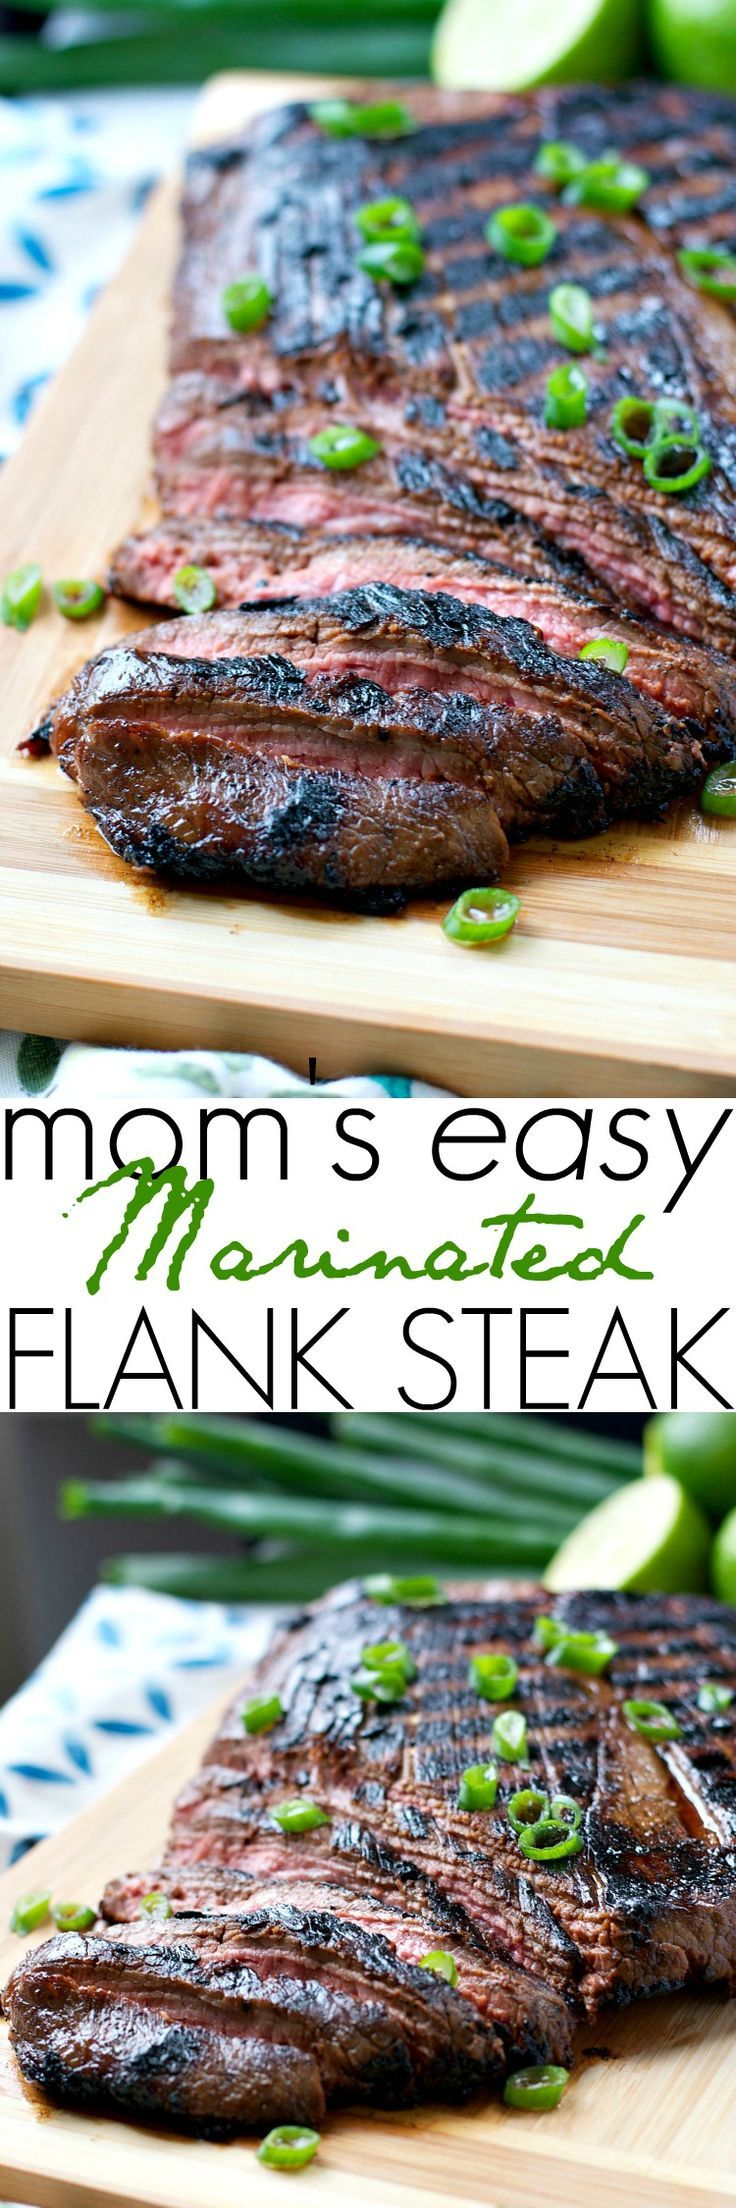 Whether you grill your beef outside, use an indoor grill, or broil it in the oven, Mom's Easy Marinated Flank Steak is a tender and juicy steak that children and adults adore!